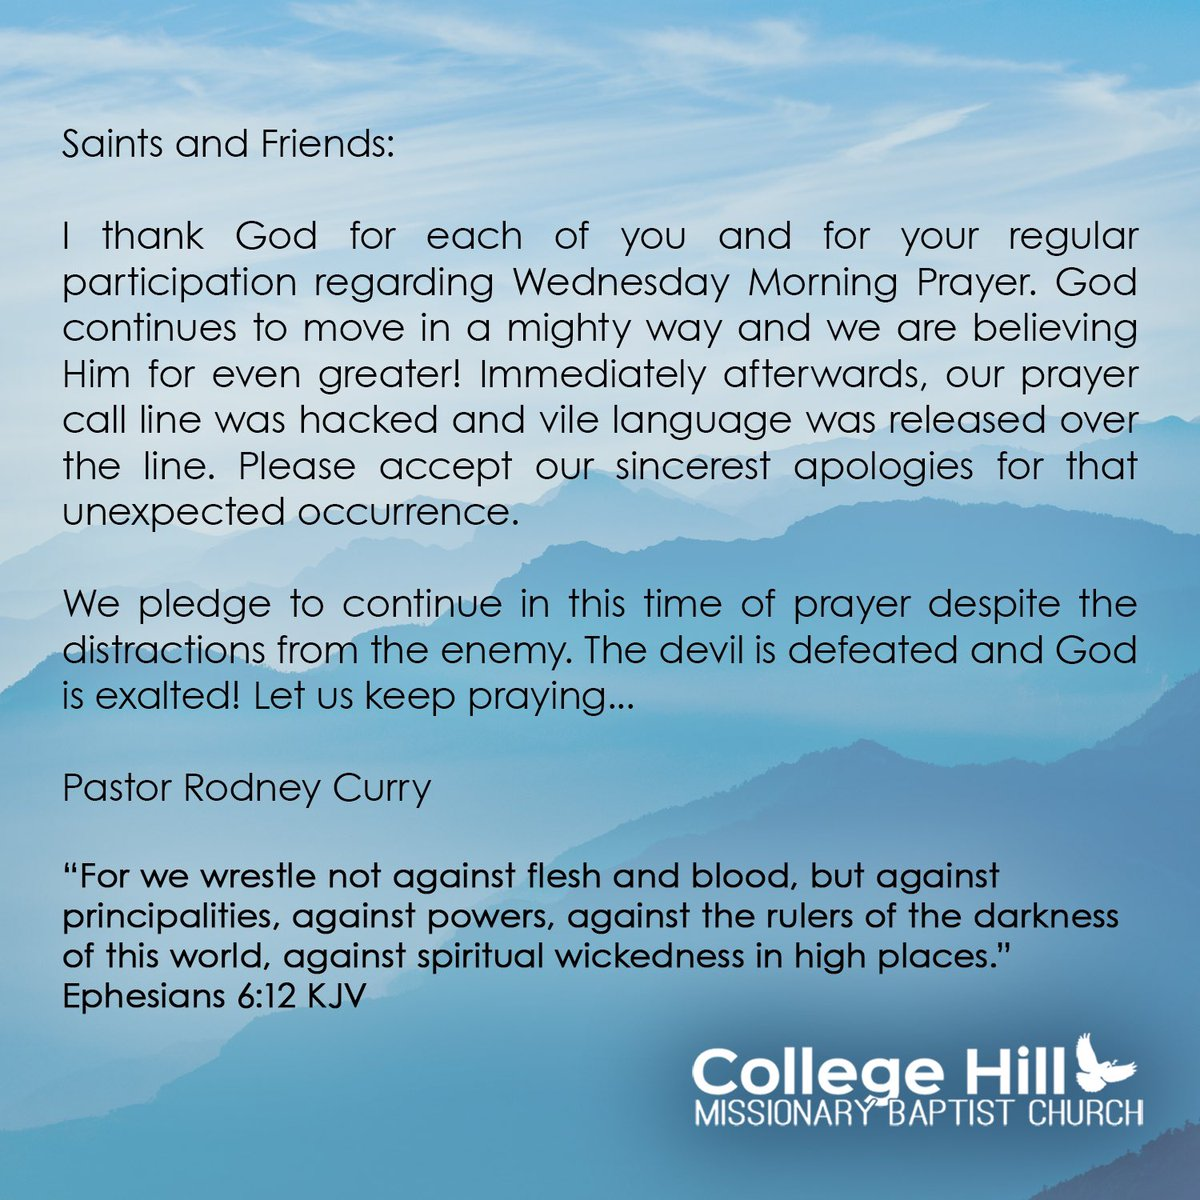 🖊 A statement from our Pastor Rodney Curry - @clefty1906  #announcement #IntercessoryPrayer #CHMBCPrayerCall #WorshipwithUs #collegehill #chmbc #tyler https://t.co/NfvbjPGcDl